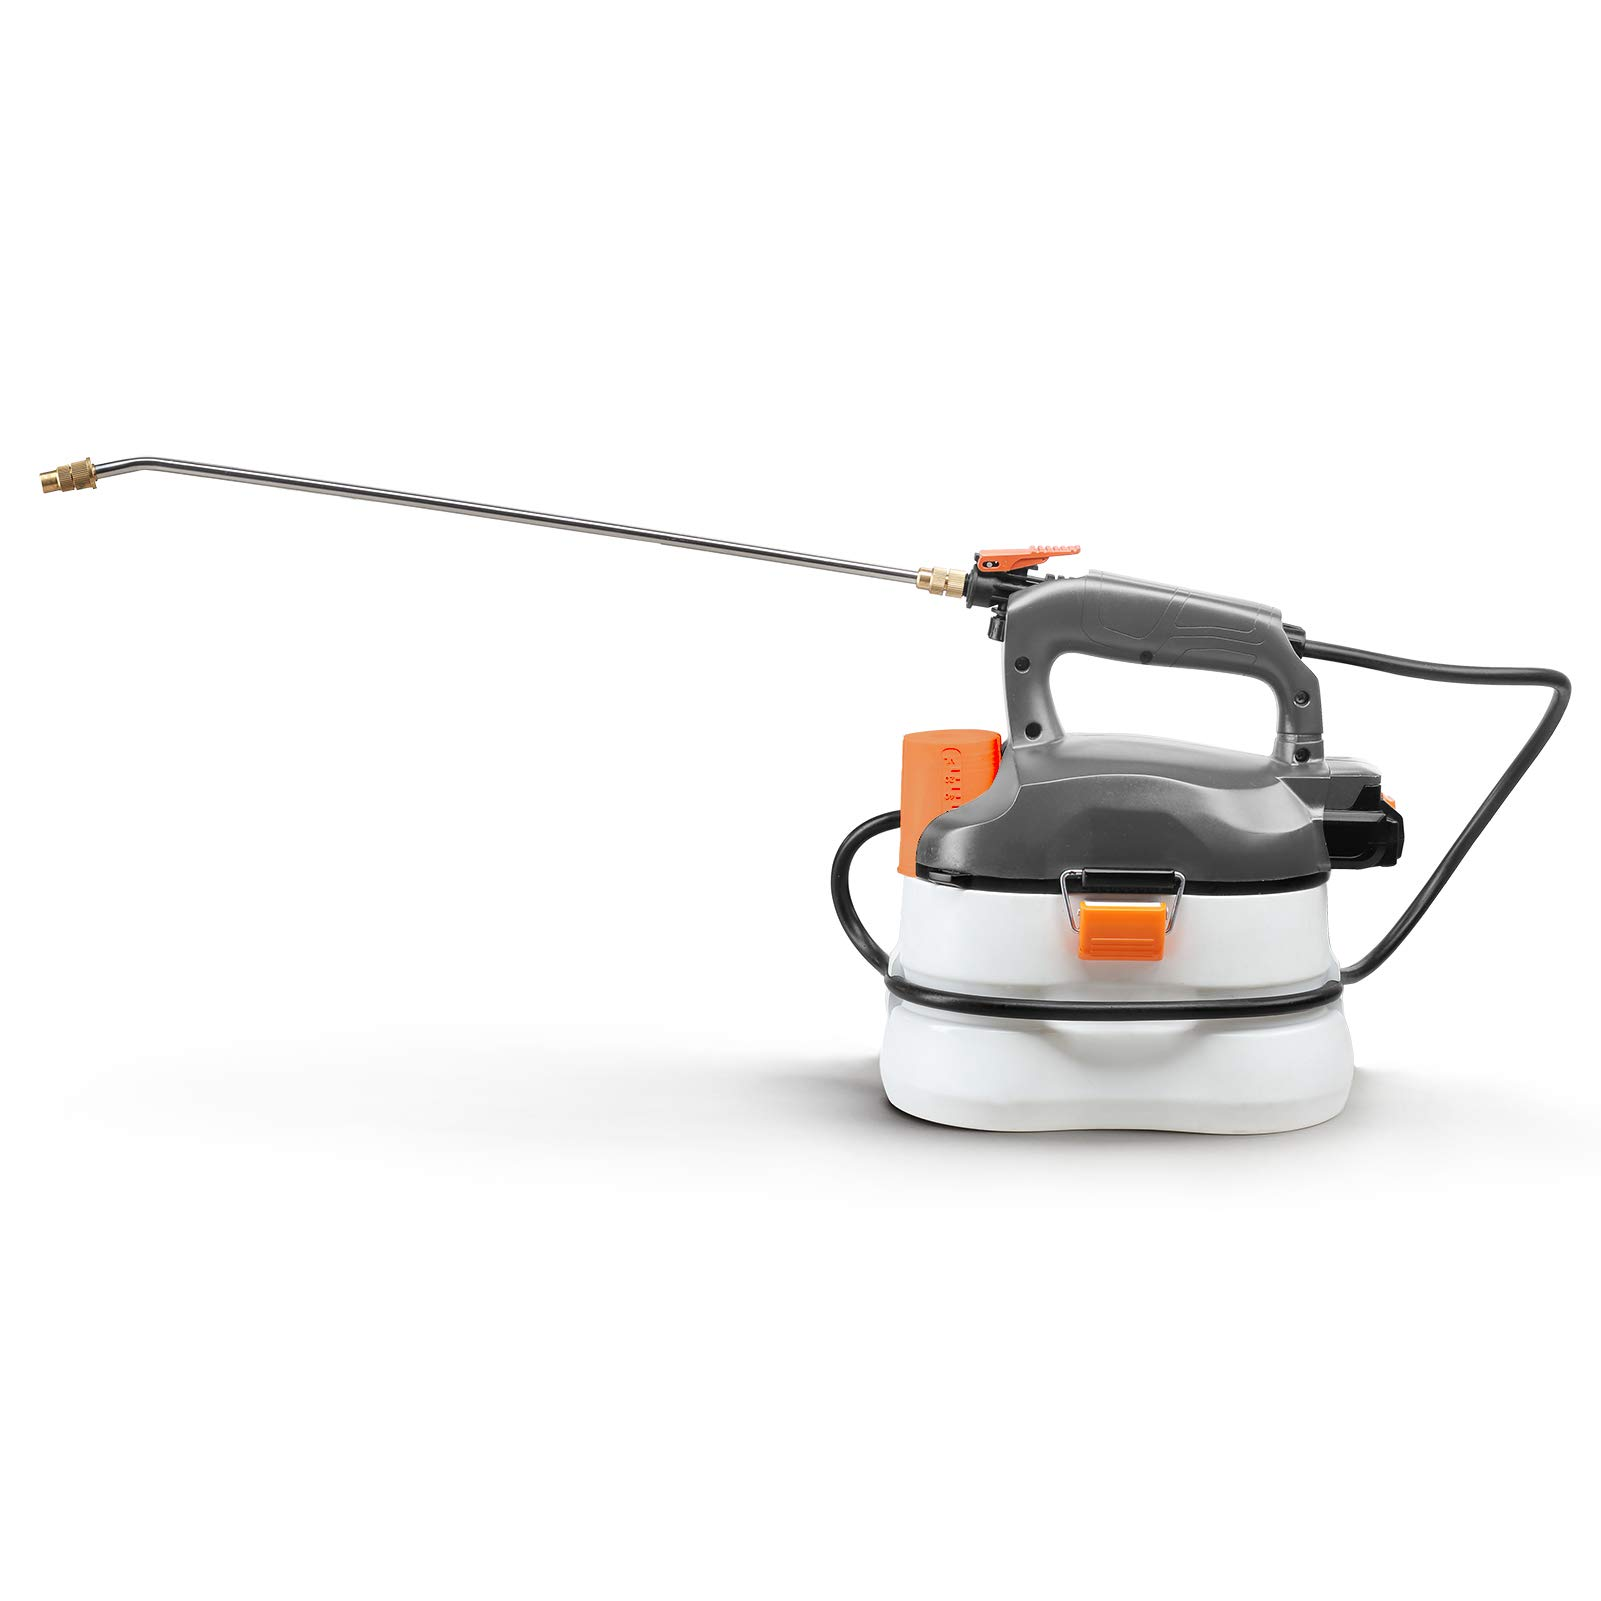 UKOKE U04GS Cordless Electric Power Garden Sprayer, 1 Gallon Tank Portable Handhel, 45 psi & 0.132 GPM (500ml per min), Grey & White 20V 2A Battery & Charger Included by UKOKE